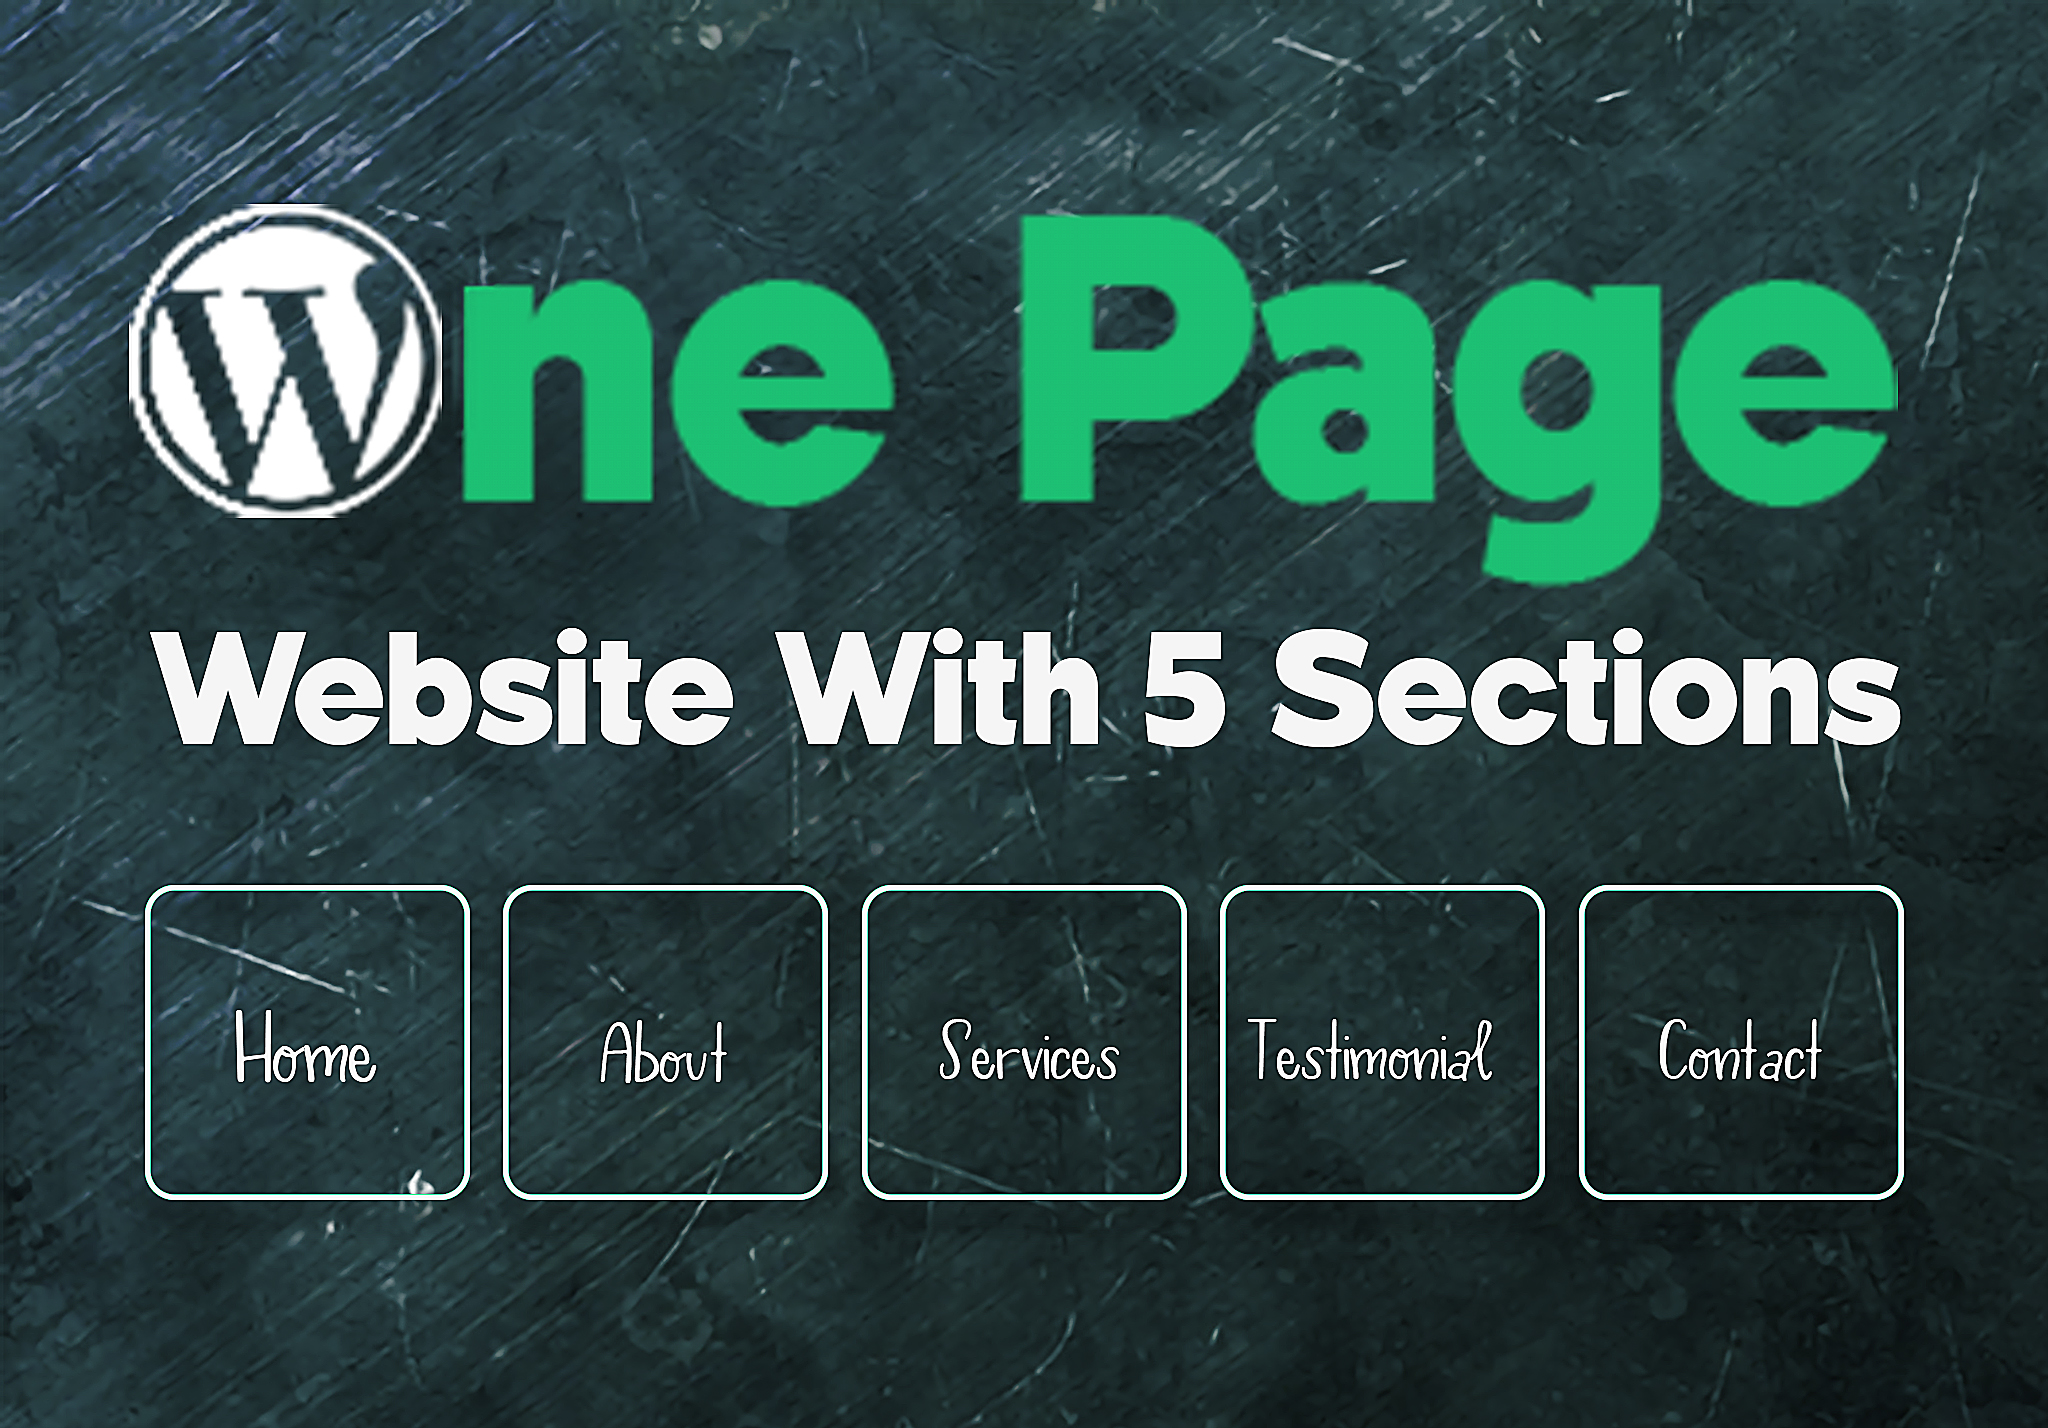 WordPress One Page Website With 5 Sections